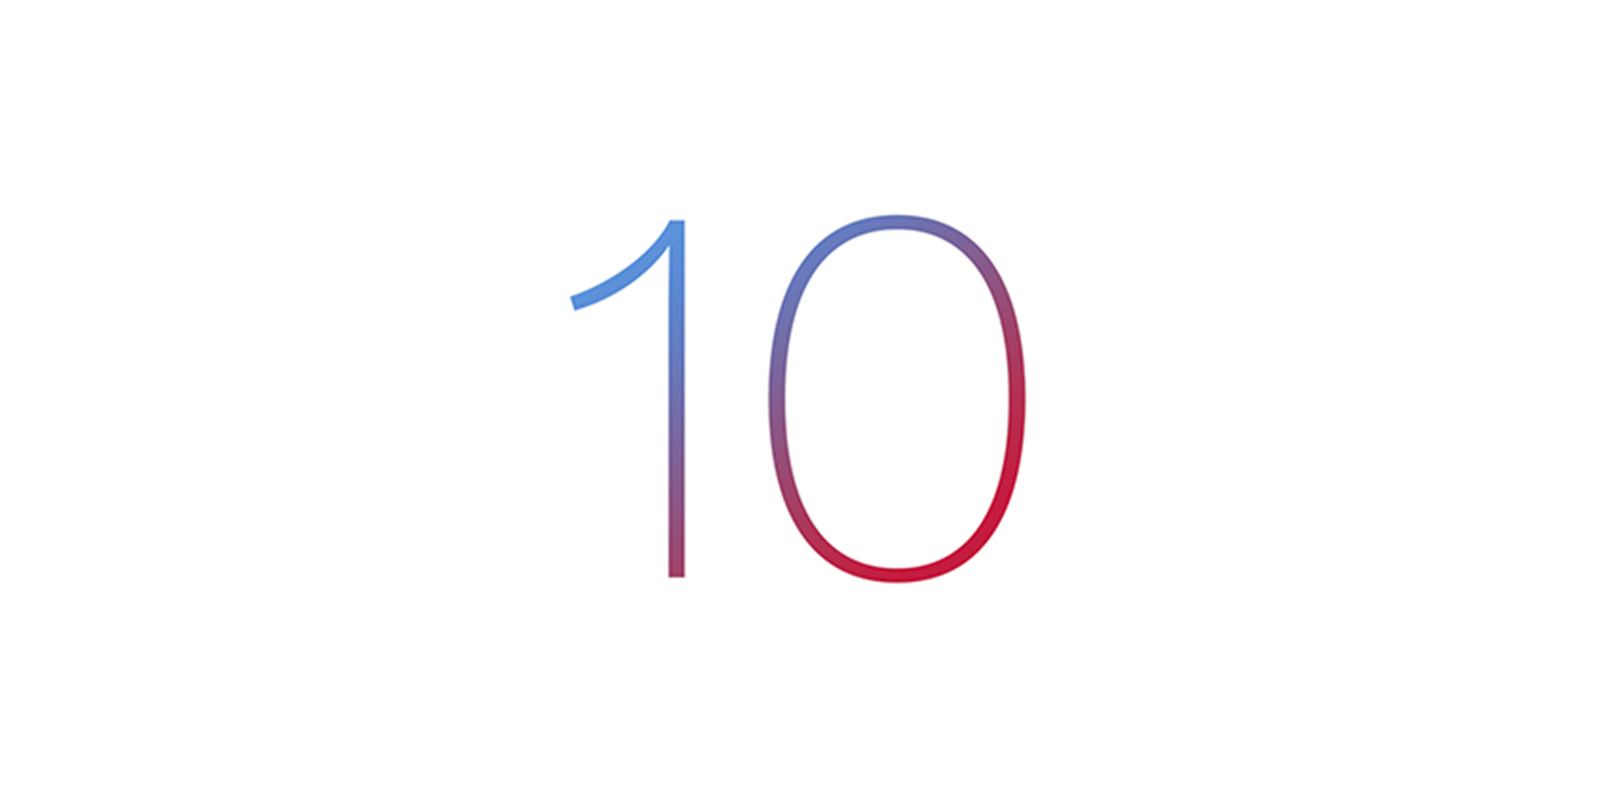 Researchers say iOS 10 backups can be cracked 2,500 times faster